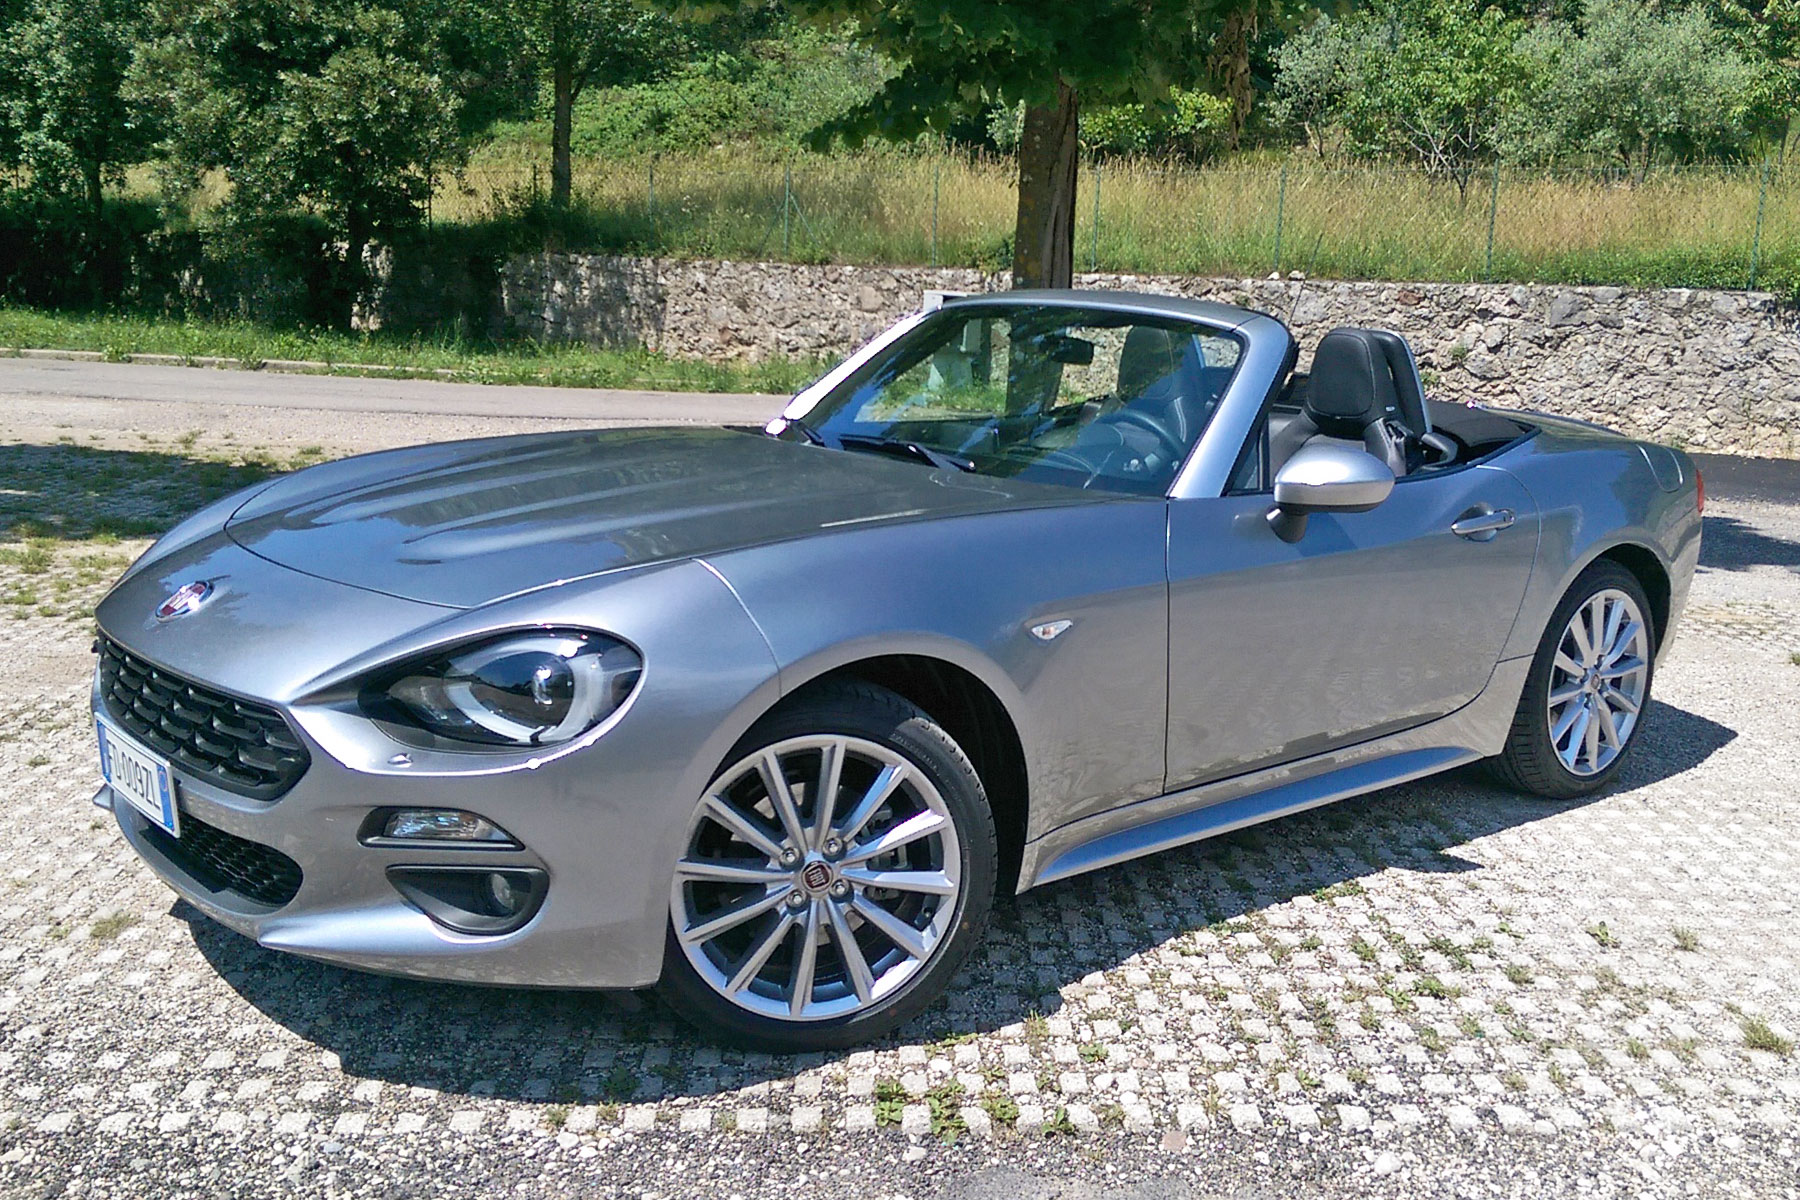 2016 Fiat 124 review: it's a more refined Mazda MX-5